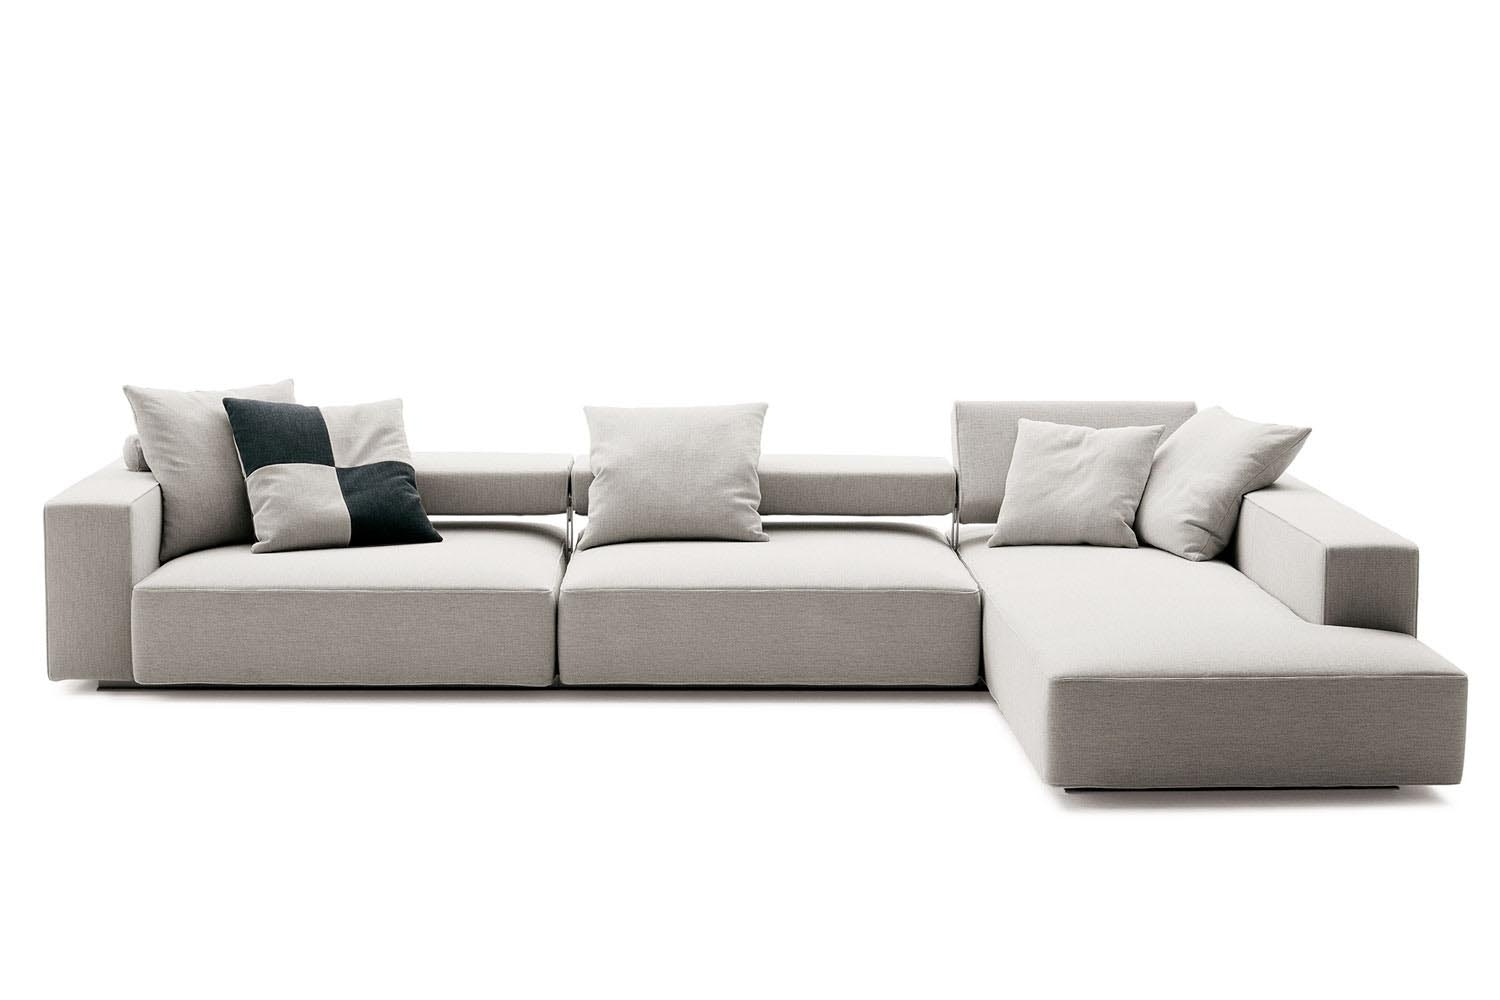 Andy Sofa by Paolo Piva for B&B Italia